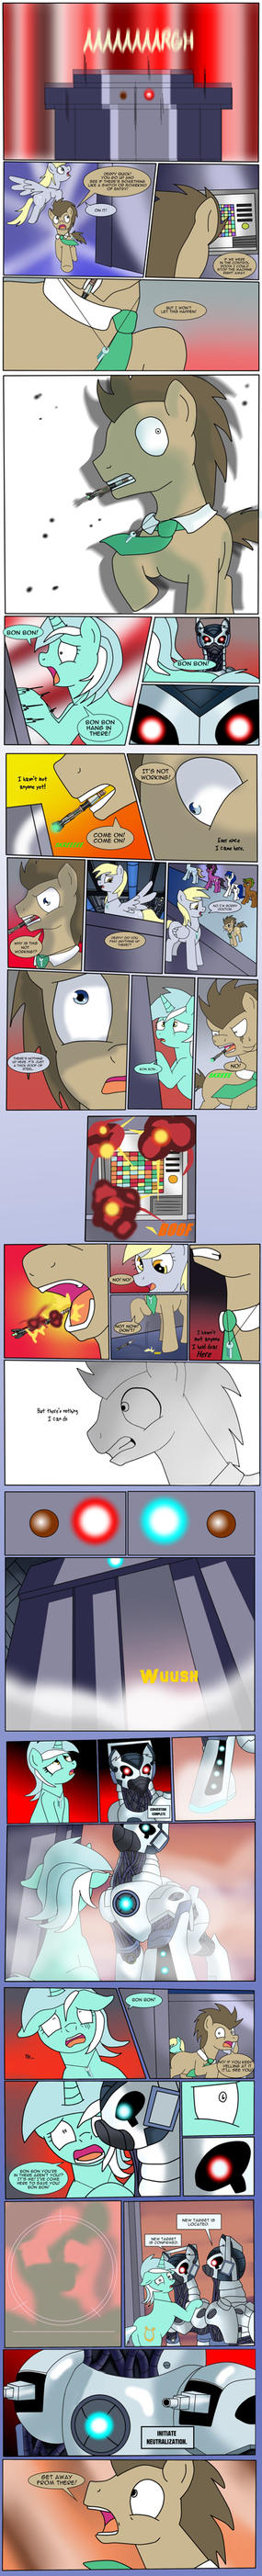 Doctor Whooves - Upgrade Pt 7 by Edowaado